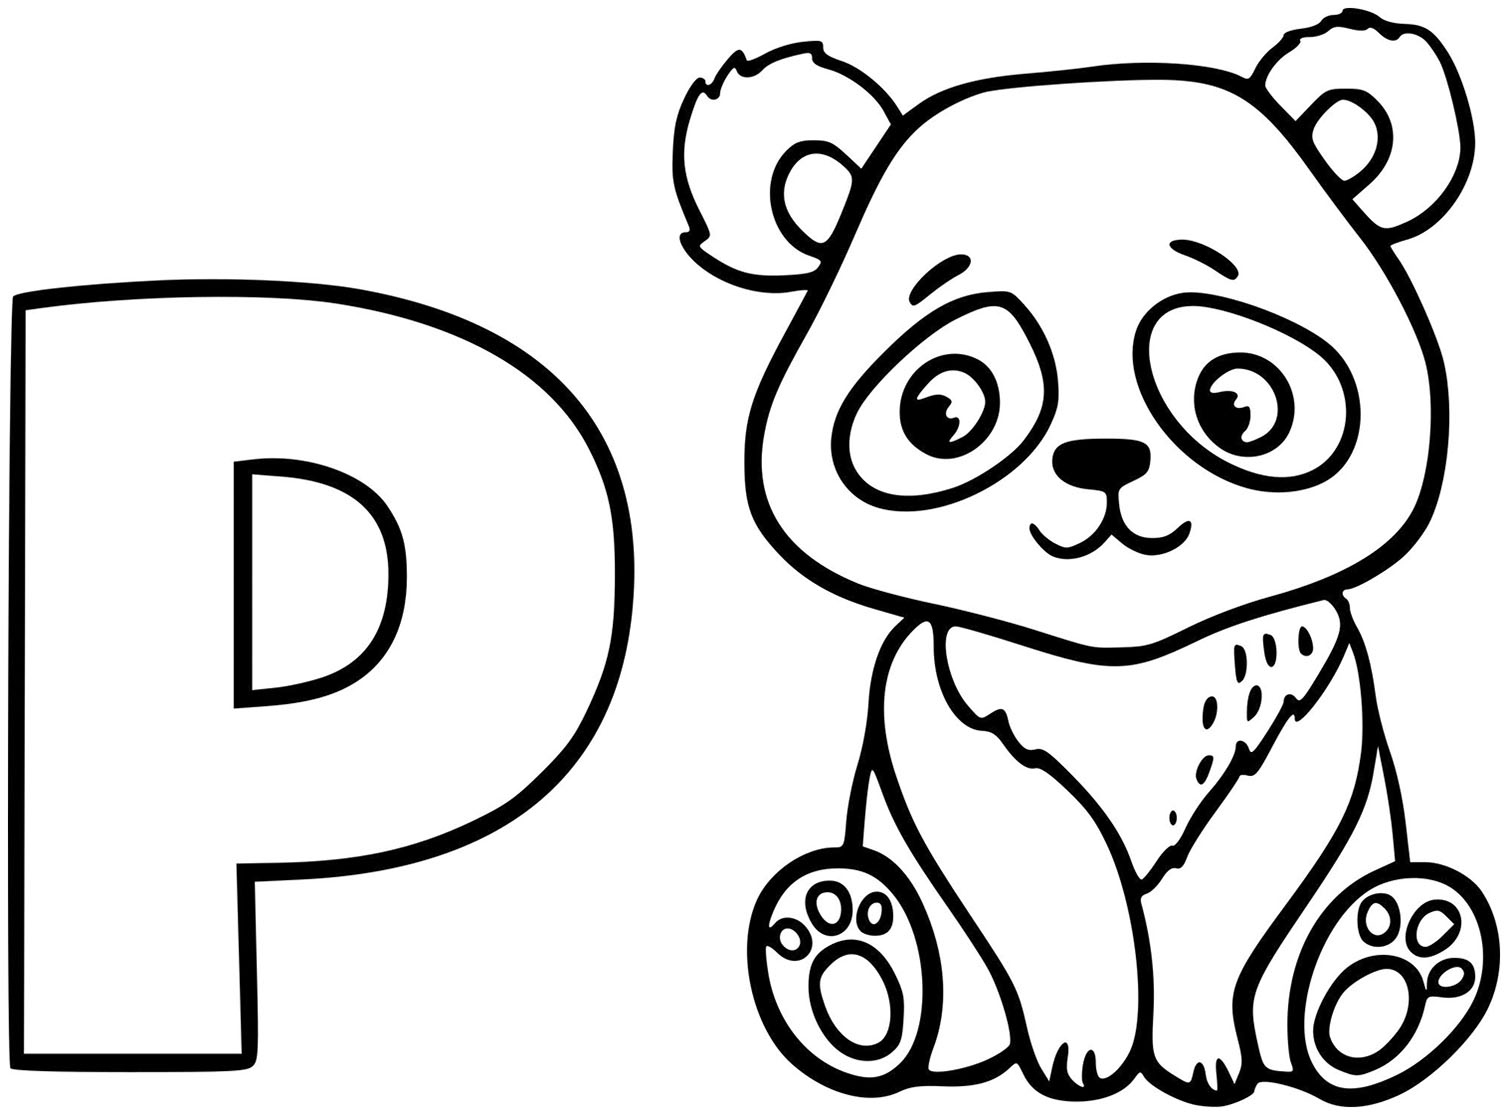 coloring panda picture pandas to download for free pandas kids coloring pages picture coloring panda